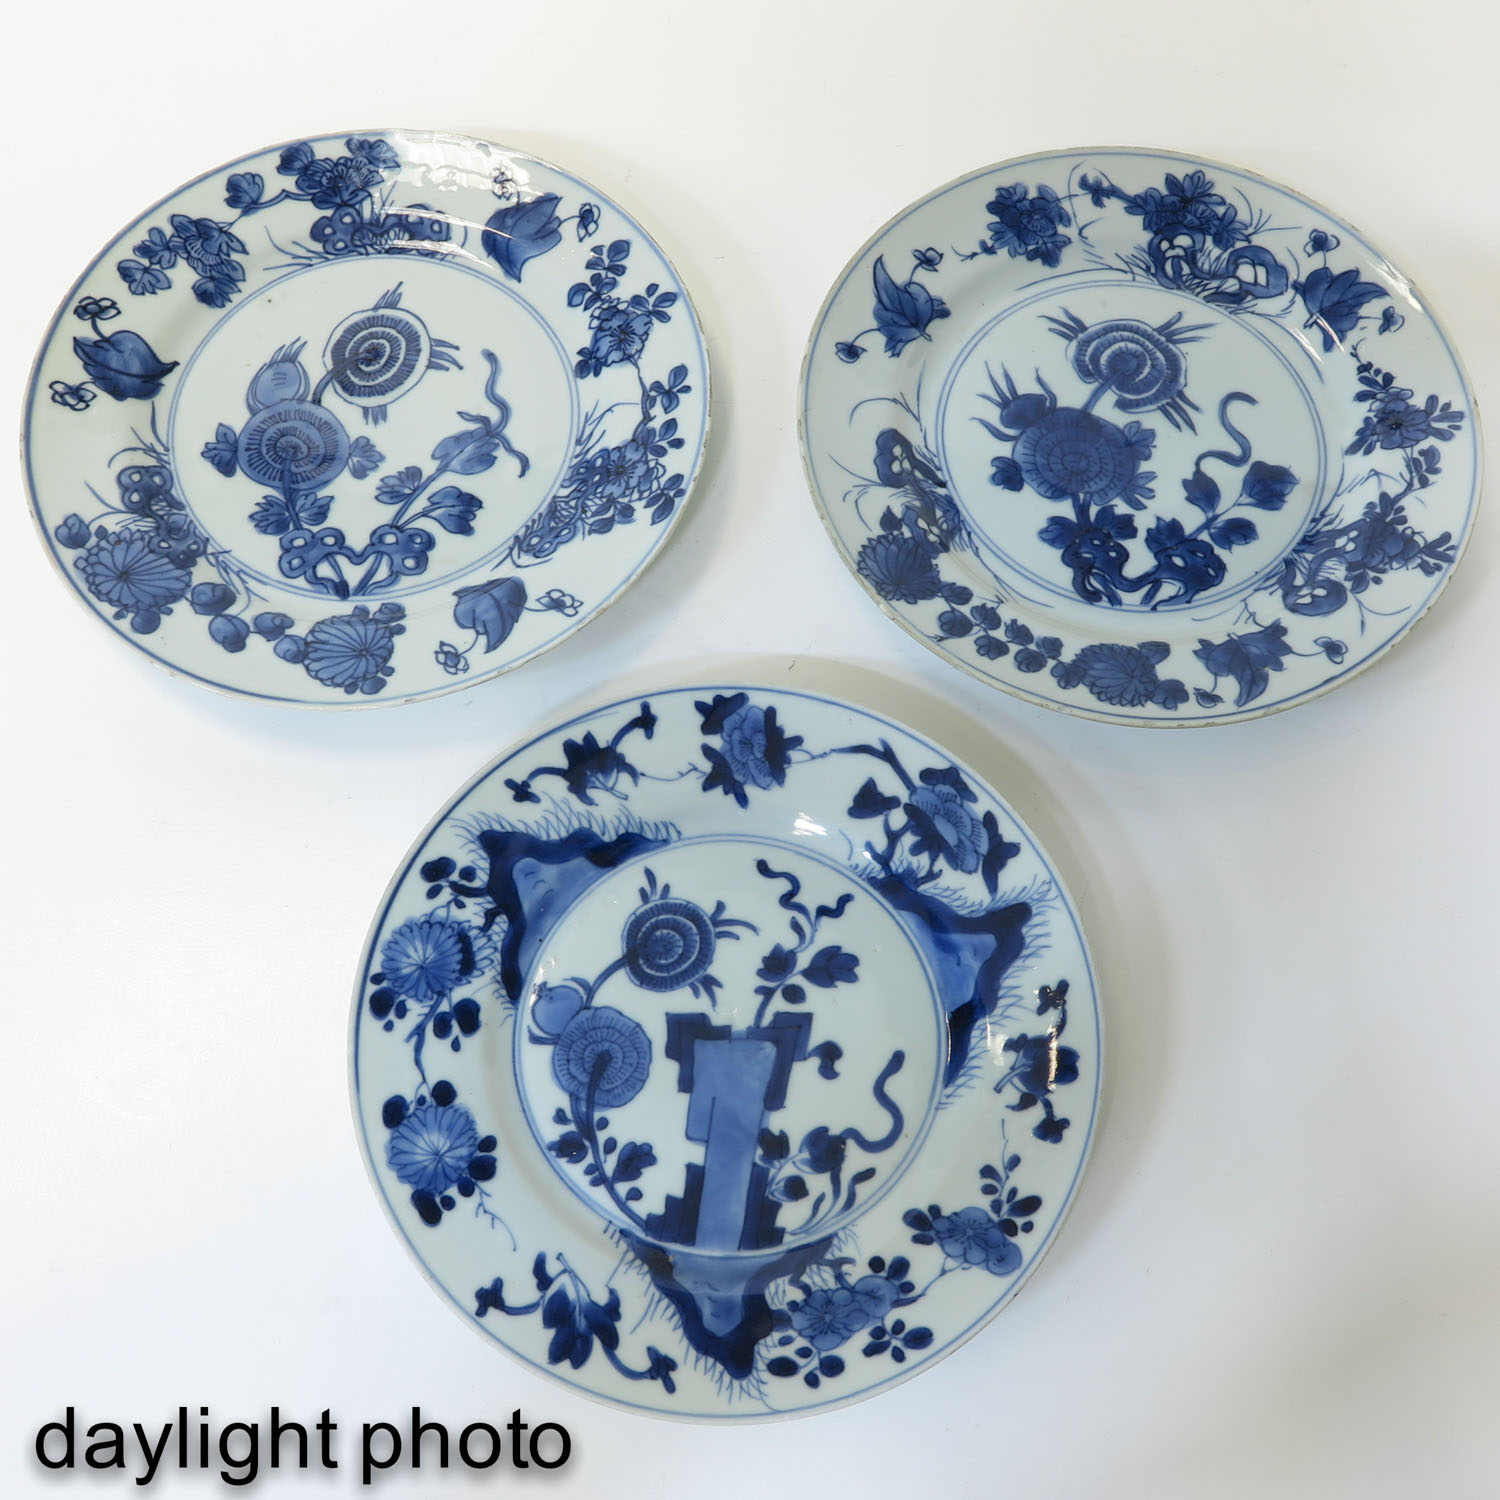 A Lot of 3 Blue and White Plates - Image 9 of 10